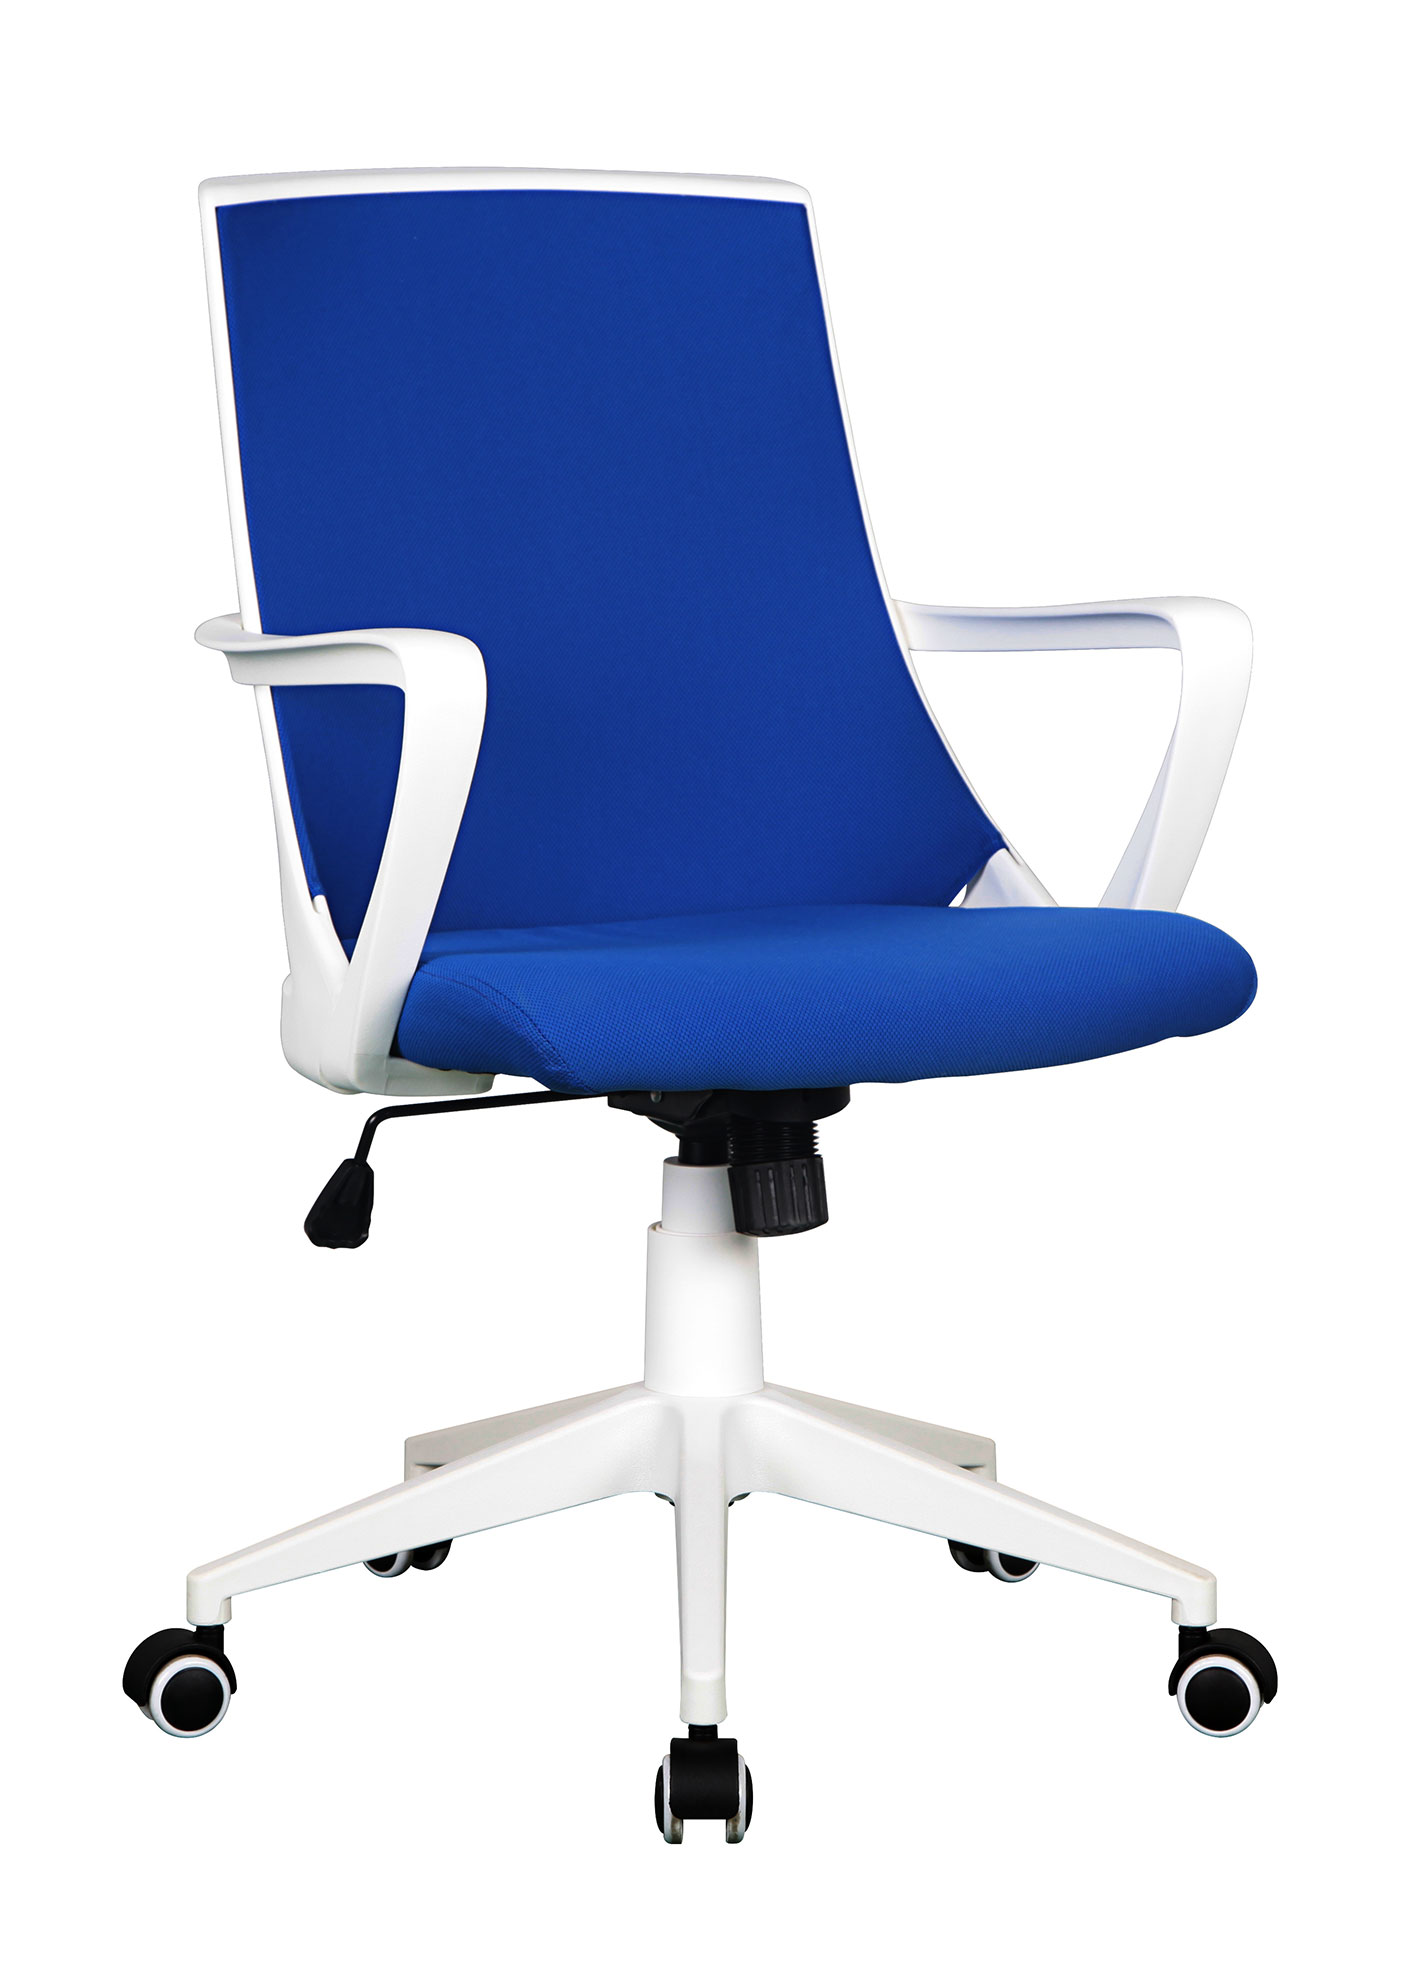 Colored Office Chairs Sixbros Office Swivel Chair Different Colors 0722m Ebay